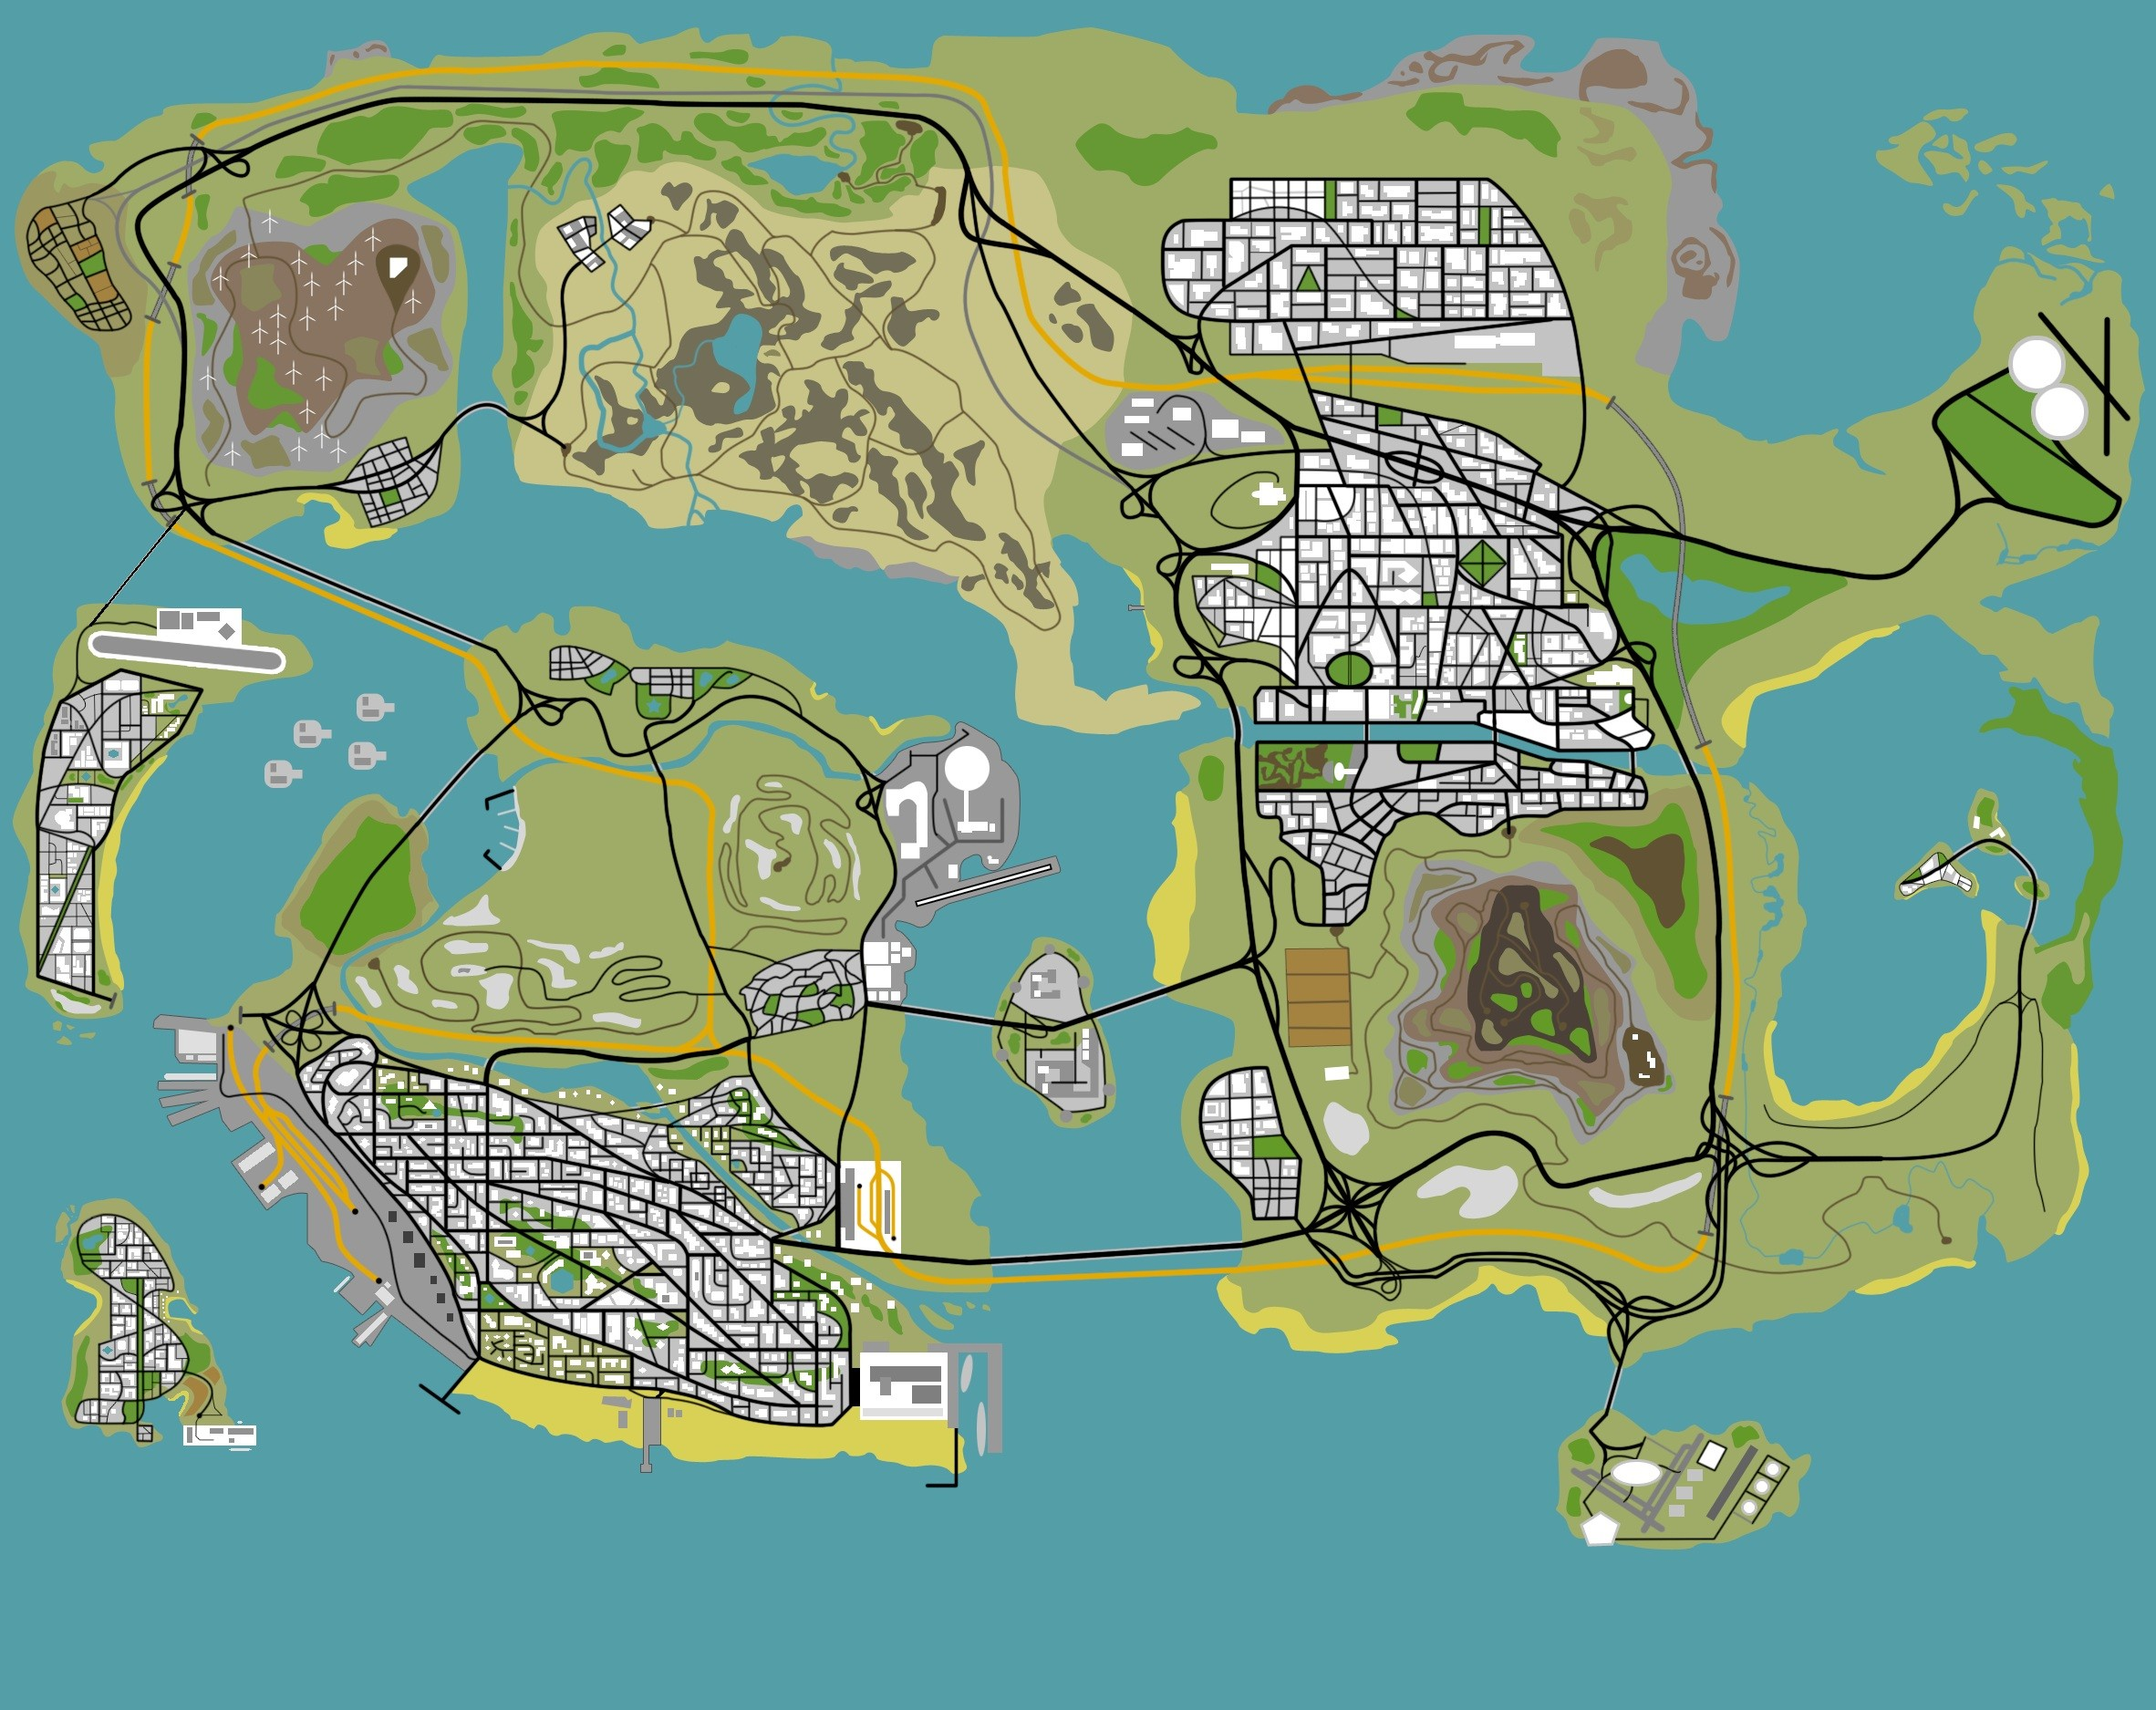 Res: 2364x1875, Another GTA IV map:  http://image.noelshack.com/fichiers/2012/30/1343129315-1343079767-Refonte-map.jpg.